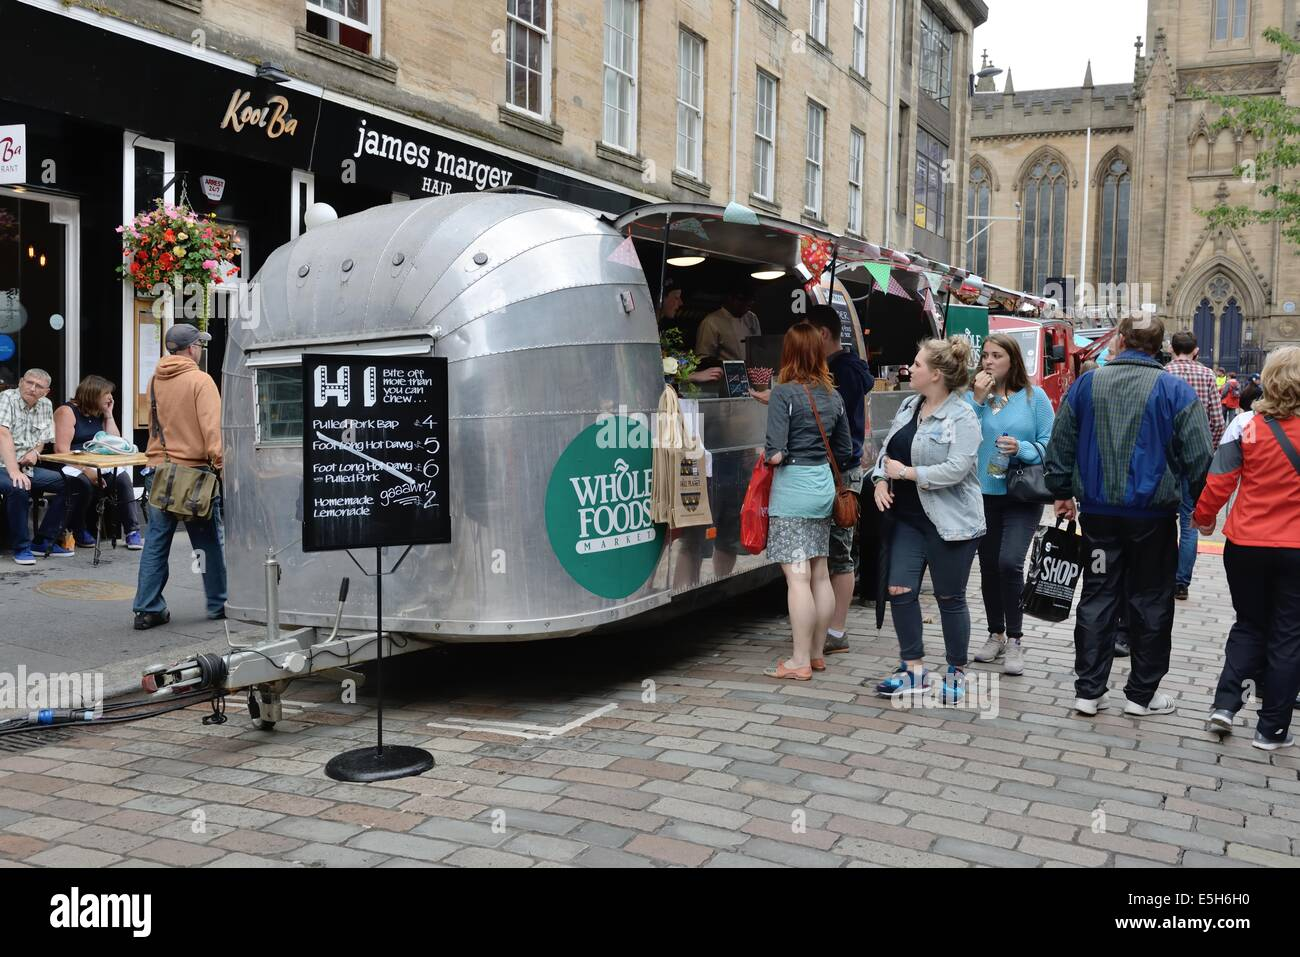 The mobile Whole Foods trailer at the Merchant city festival in Glasgow city centre, Scotland - Stock Image